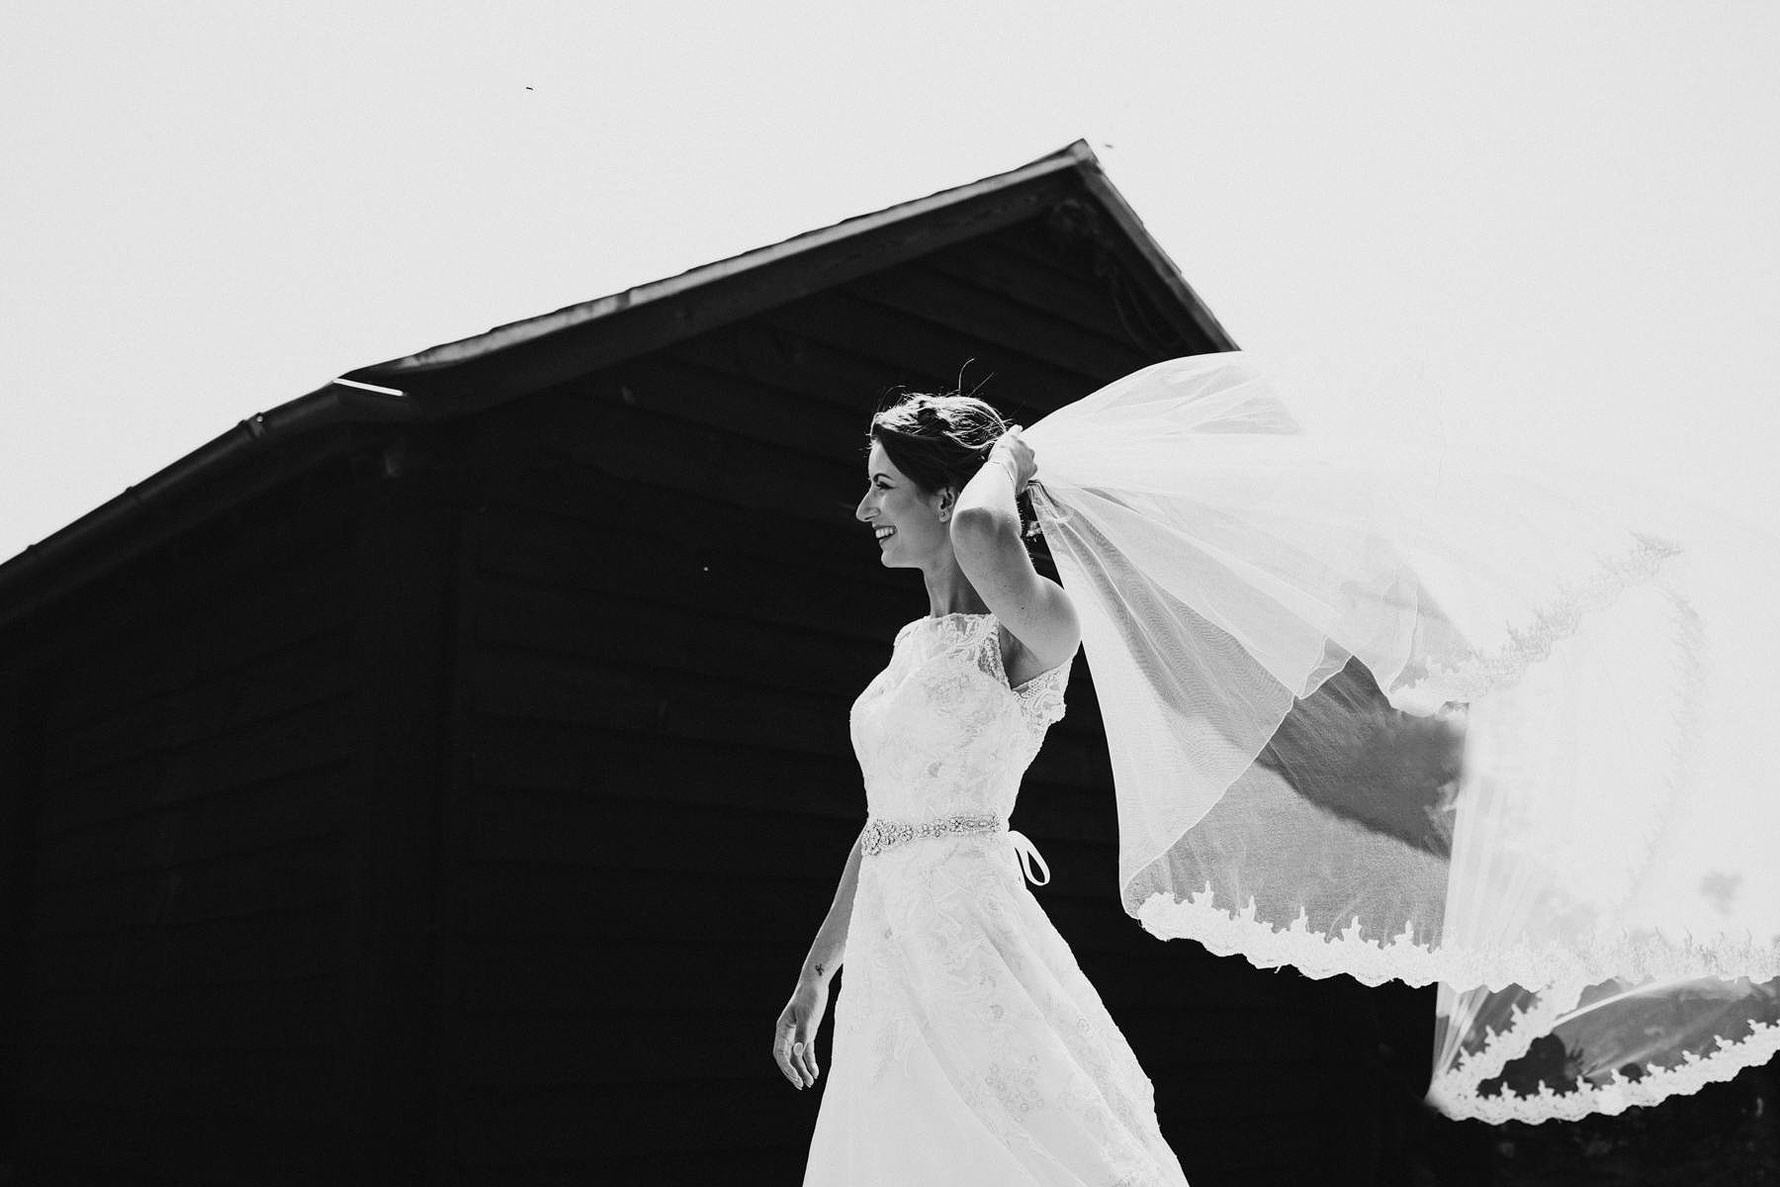 a black and white image of a bride and her veil